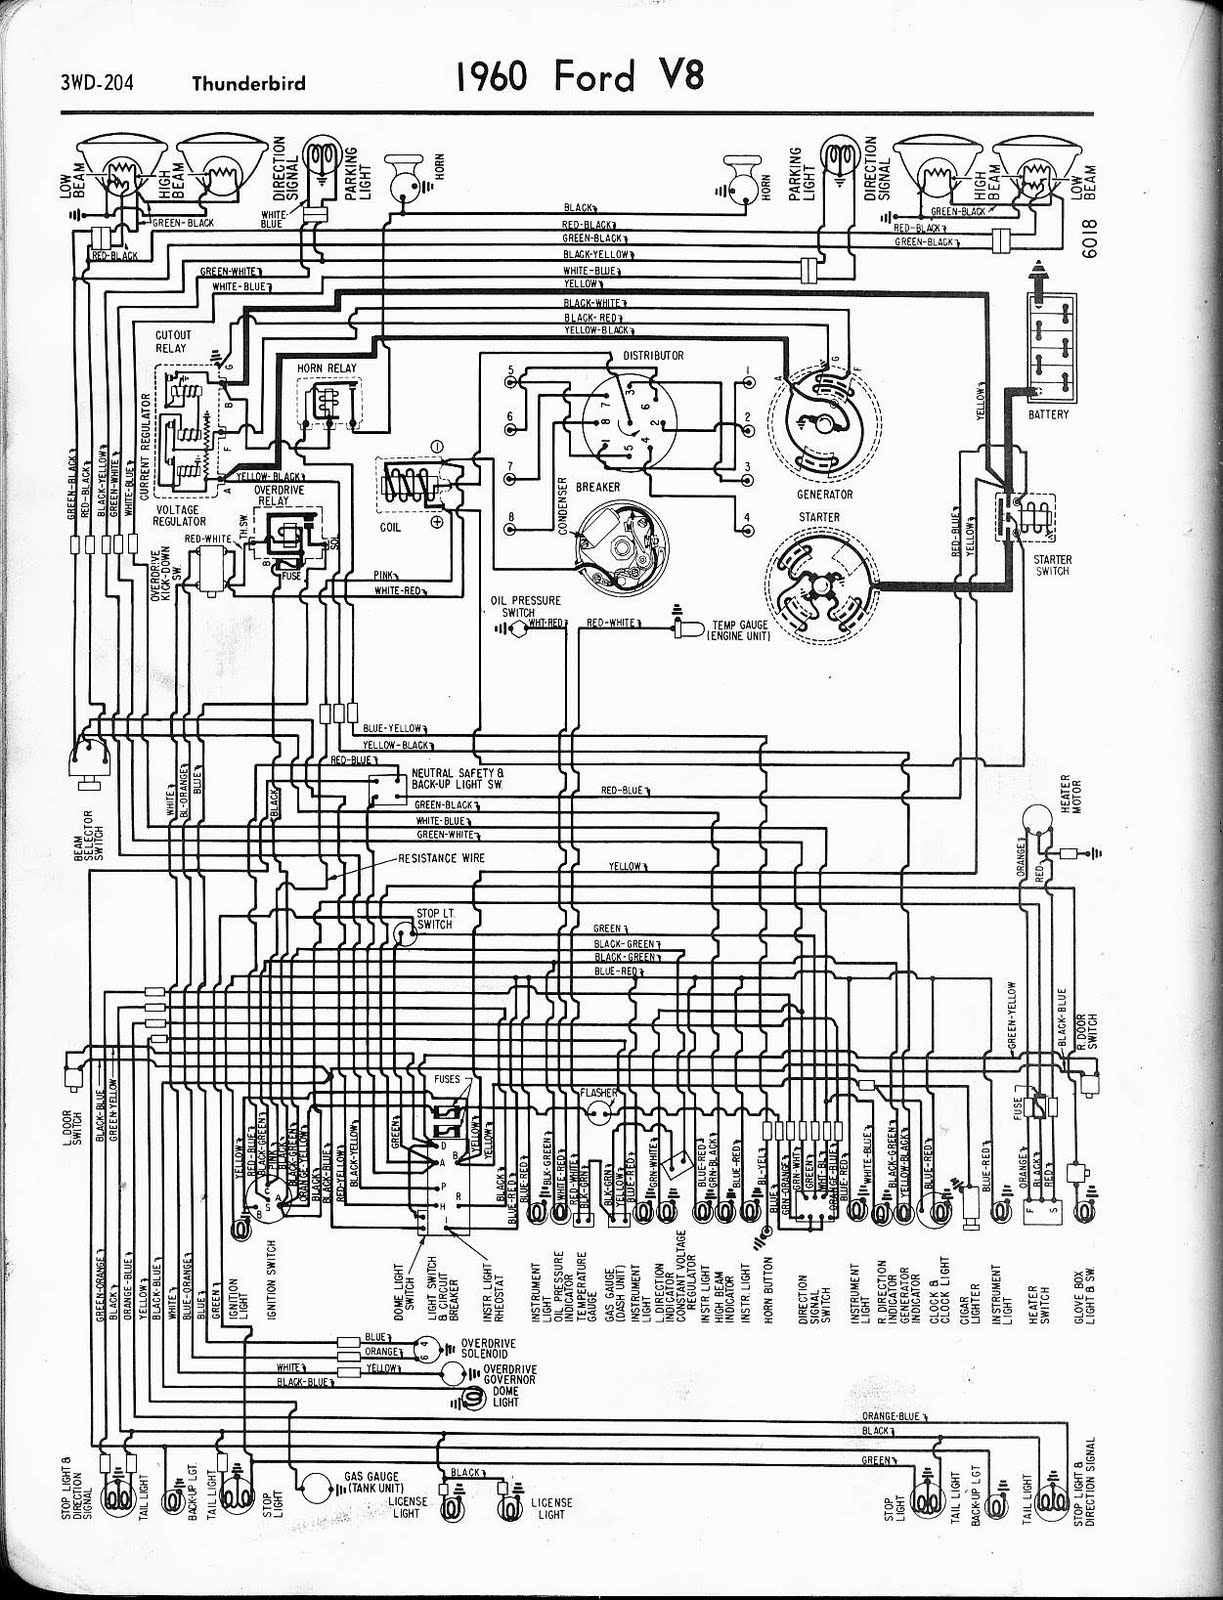 free auto wiring diagram 1960 ford v8 thunderbird wiring diagram rh autowiringdiagram blogspot com 1964 ford thunderbird convertible wiring diagram 1957 ford thunderbird wiring diagram